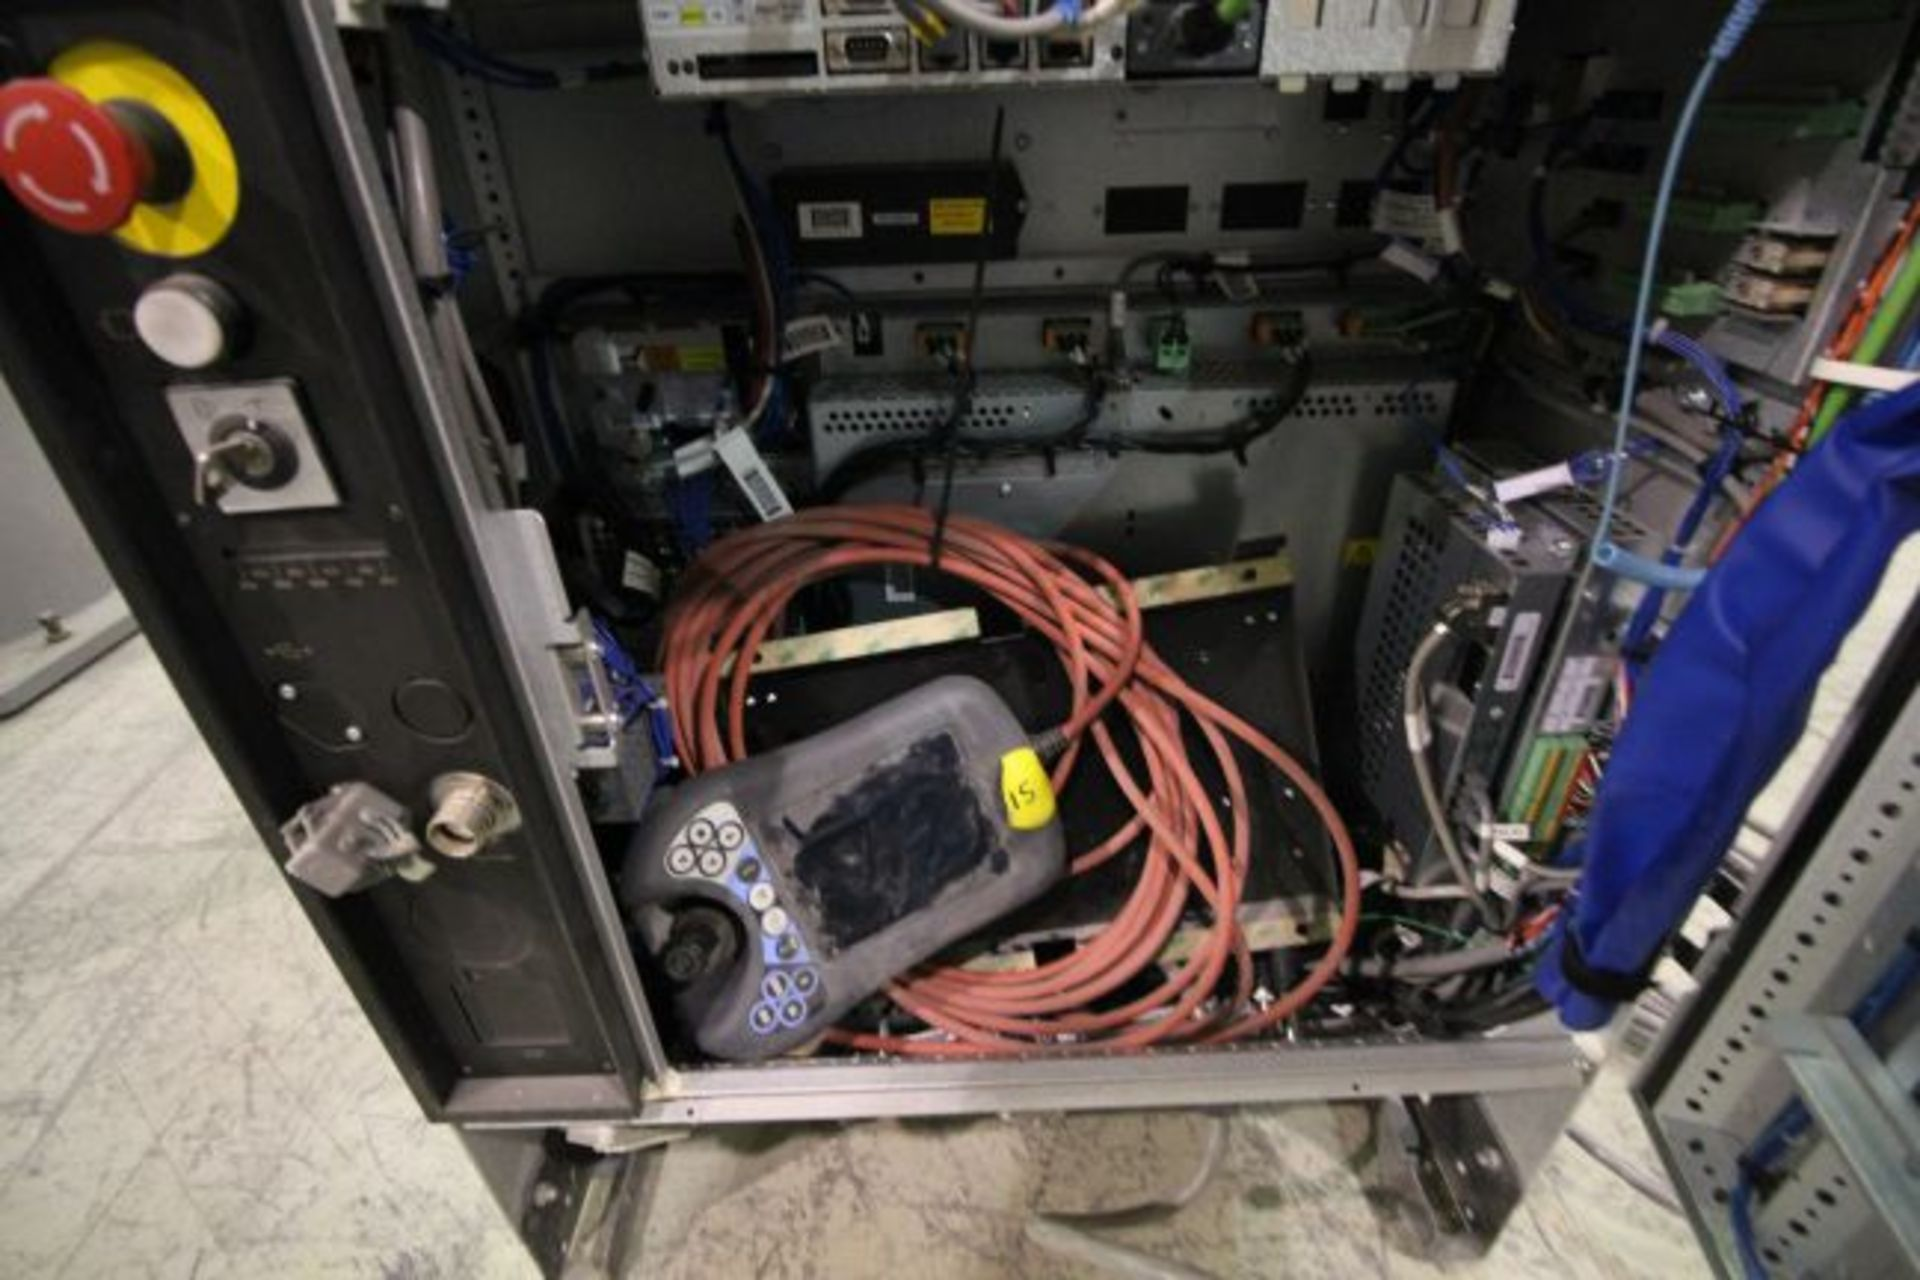 ABB ROBOT IRB 4600 2.55/40KG WITH IRC5 CONTROLS, YEAR 2014, SN 500869TEACH PENDANT& CABLES - Image 7 of 9